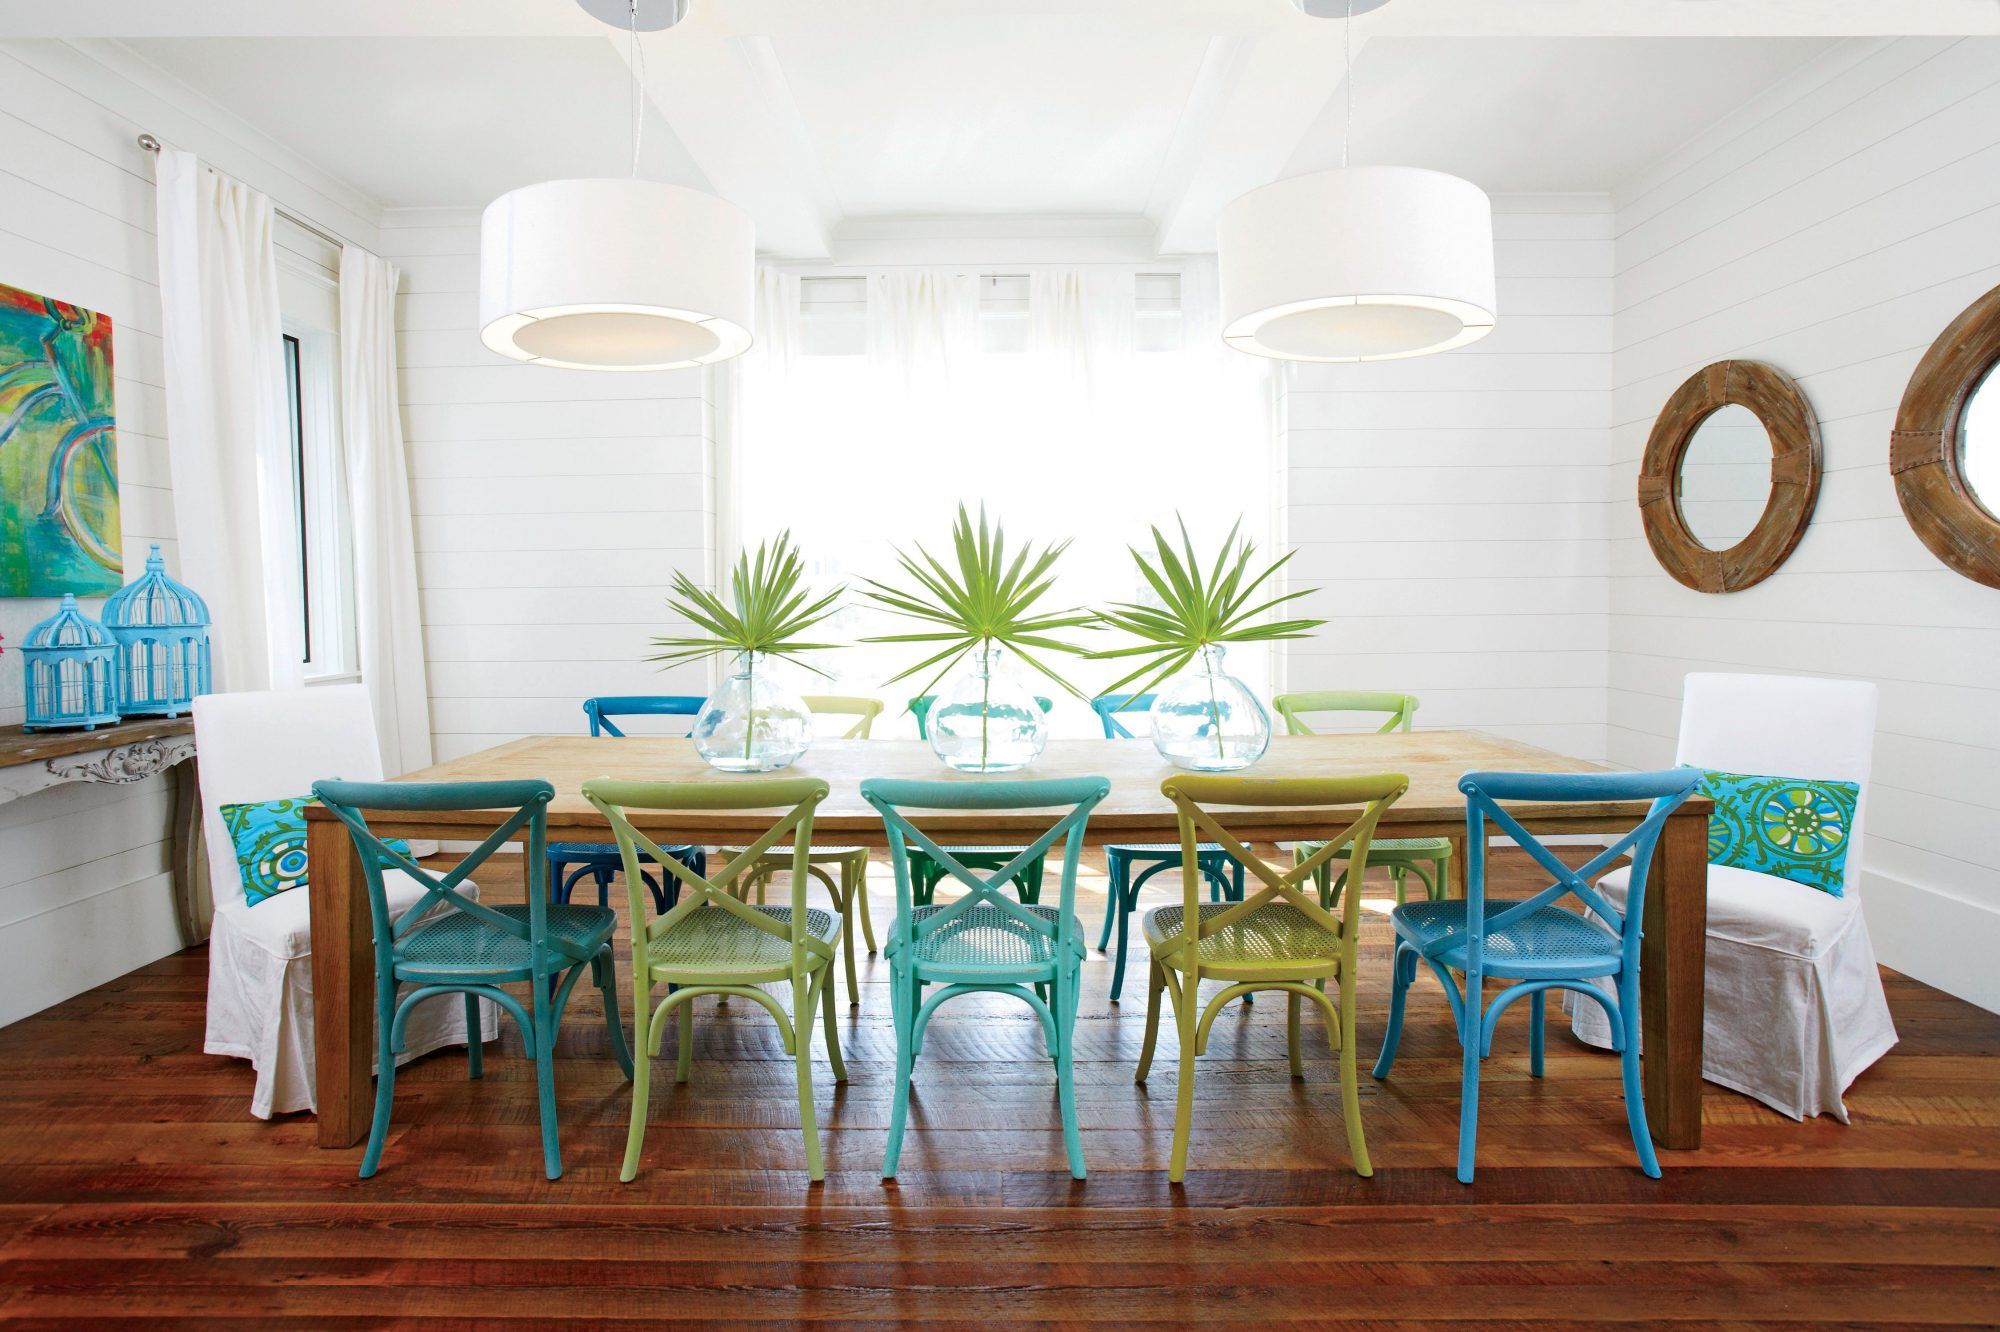 For a cheerful, ultra-casual vibe, the homeowners of this Florida beach house spray-painted wooden side chairs from Restoration Hardware in varying shades of blue and green.